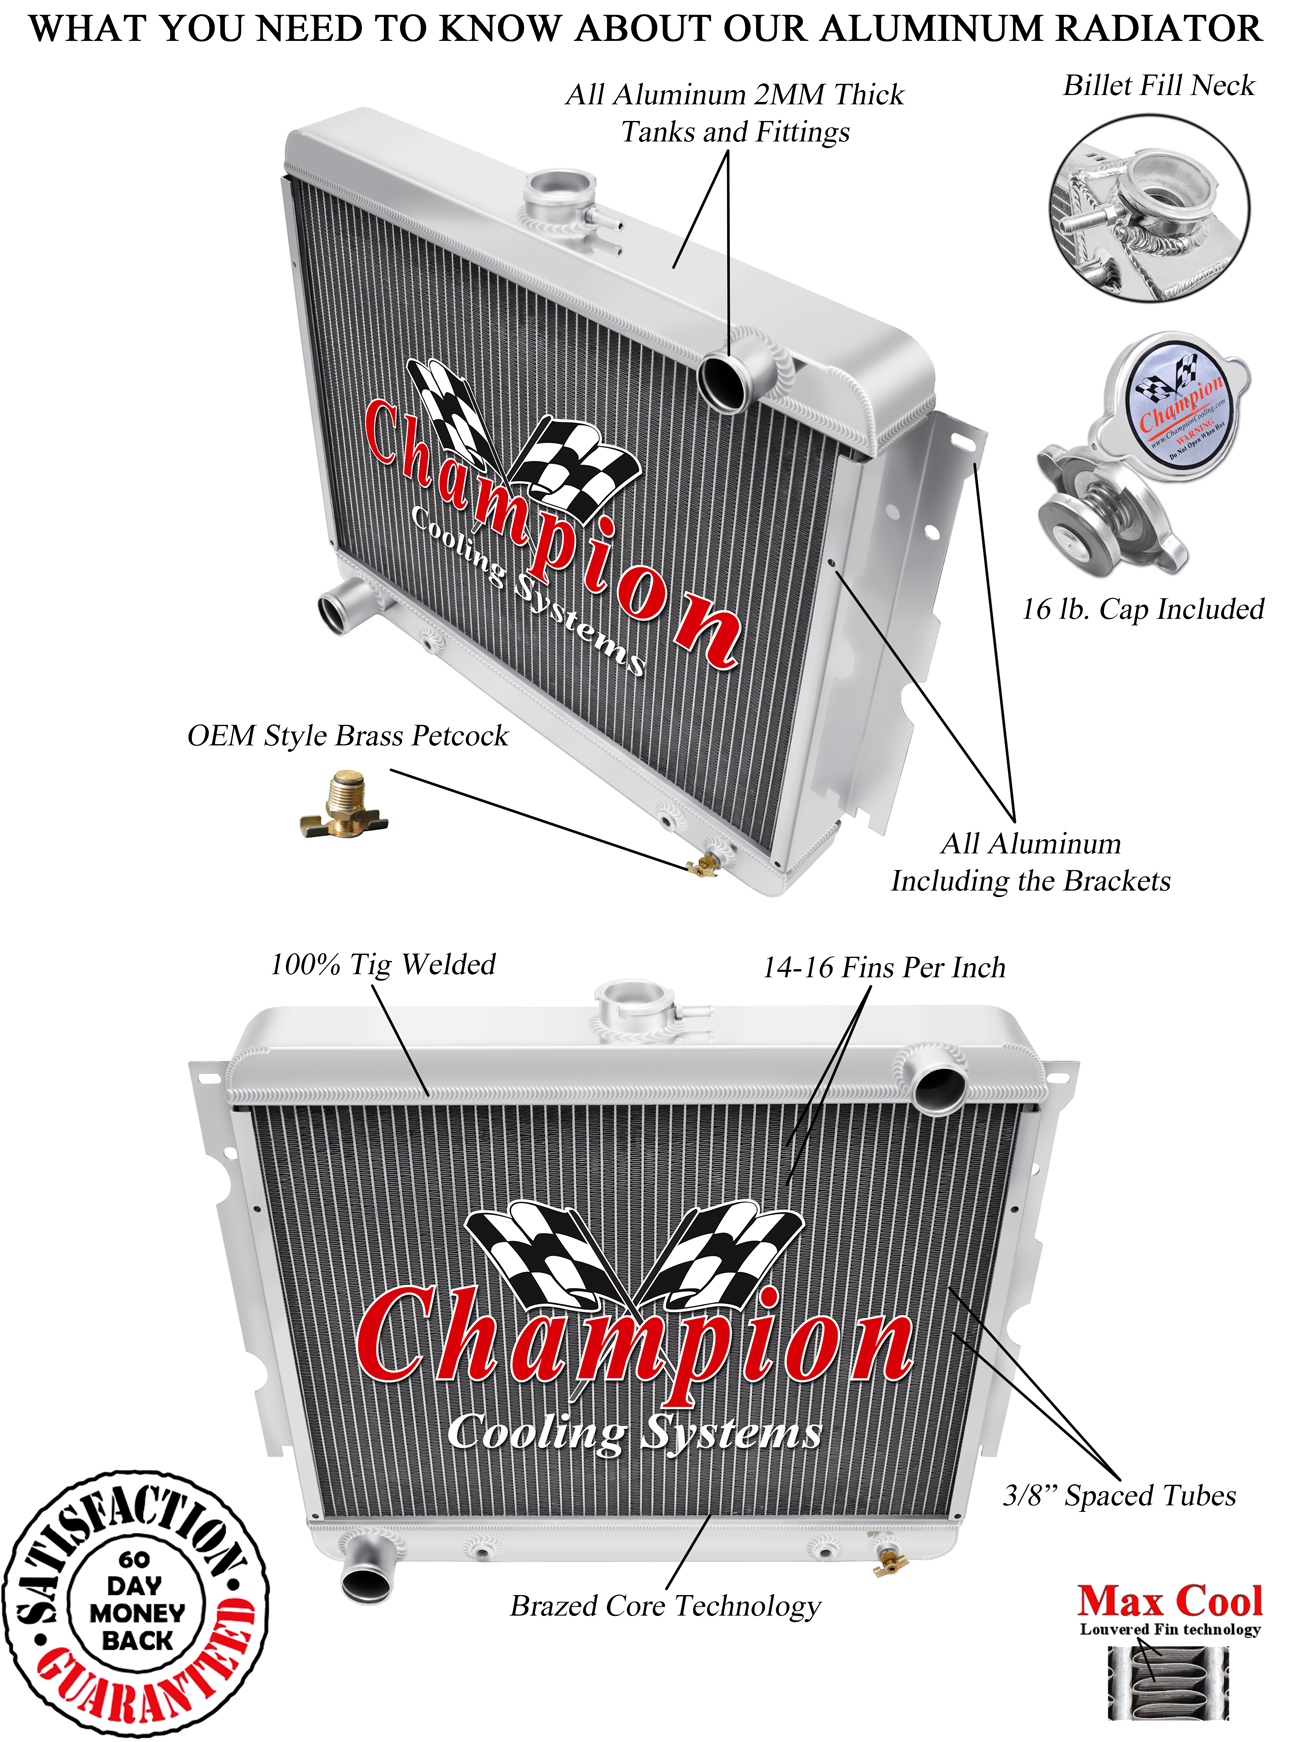 https://www.championcooling.com/photos/Photos%20White/Without%20Fans/2375/2375_white_Diagram_1.jpg